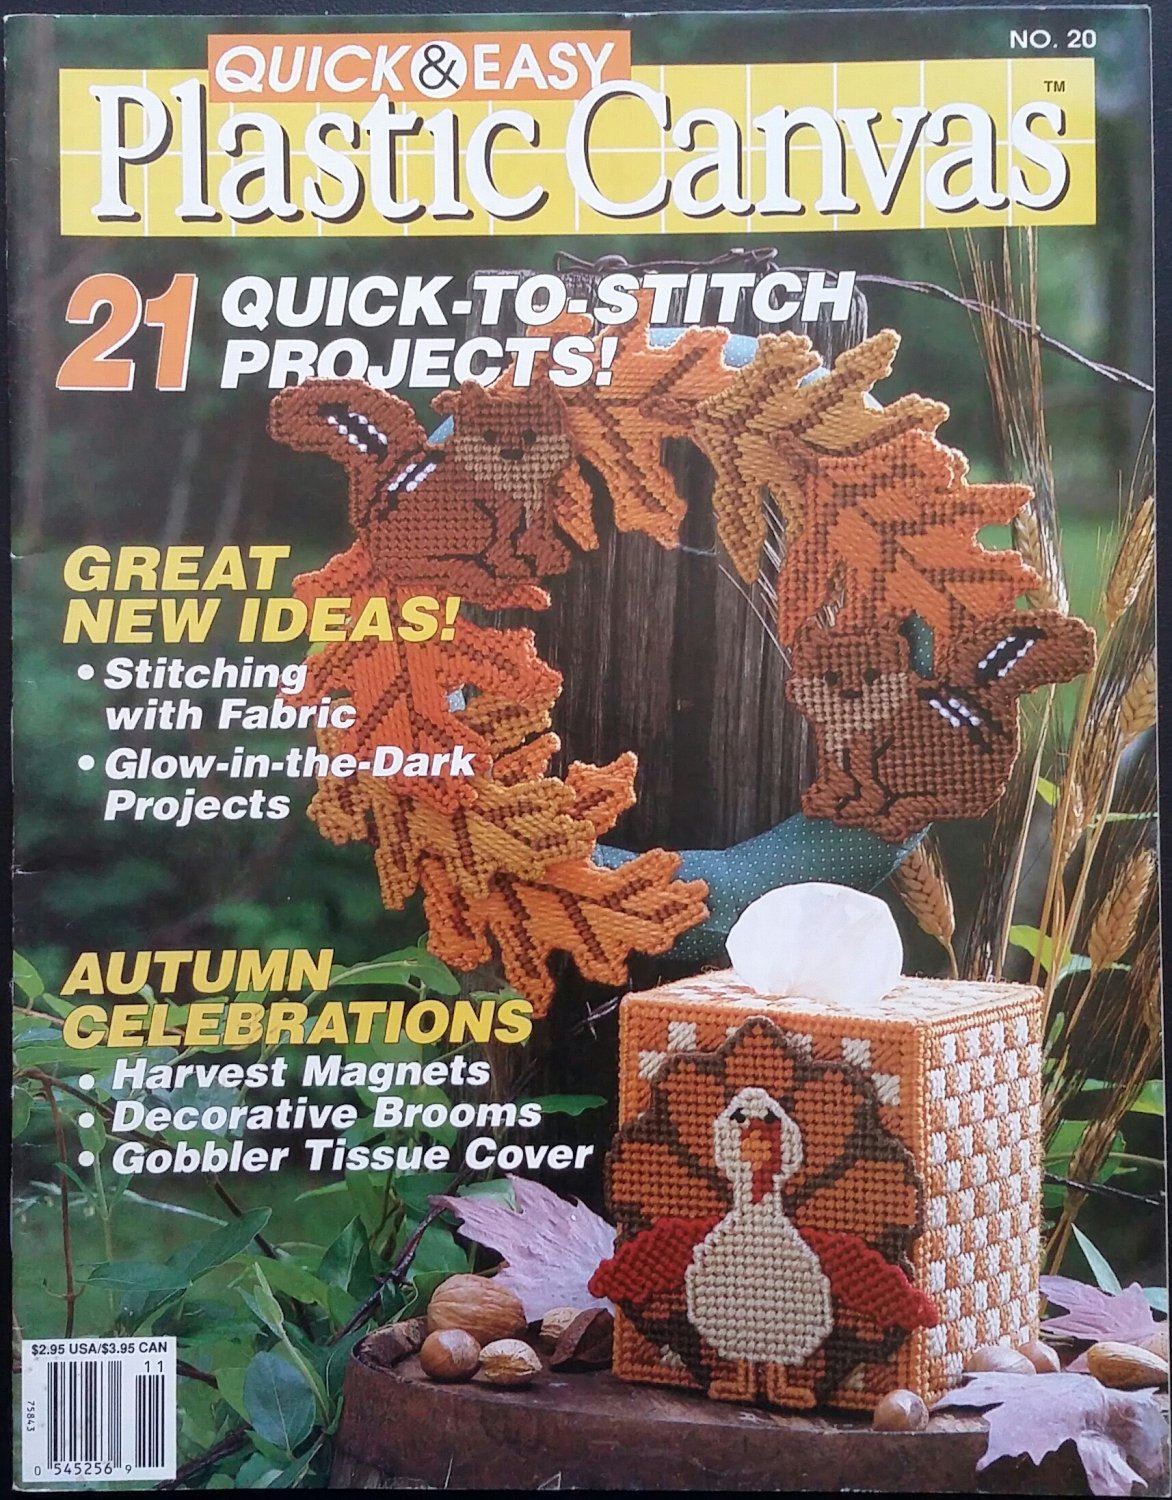 Quick & Easy Plastic Canvas No. 20 Magazine (Oct / Nov 1992)